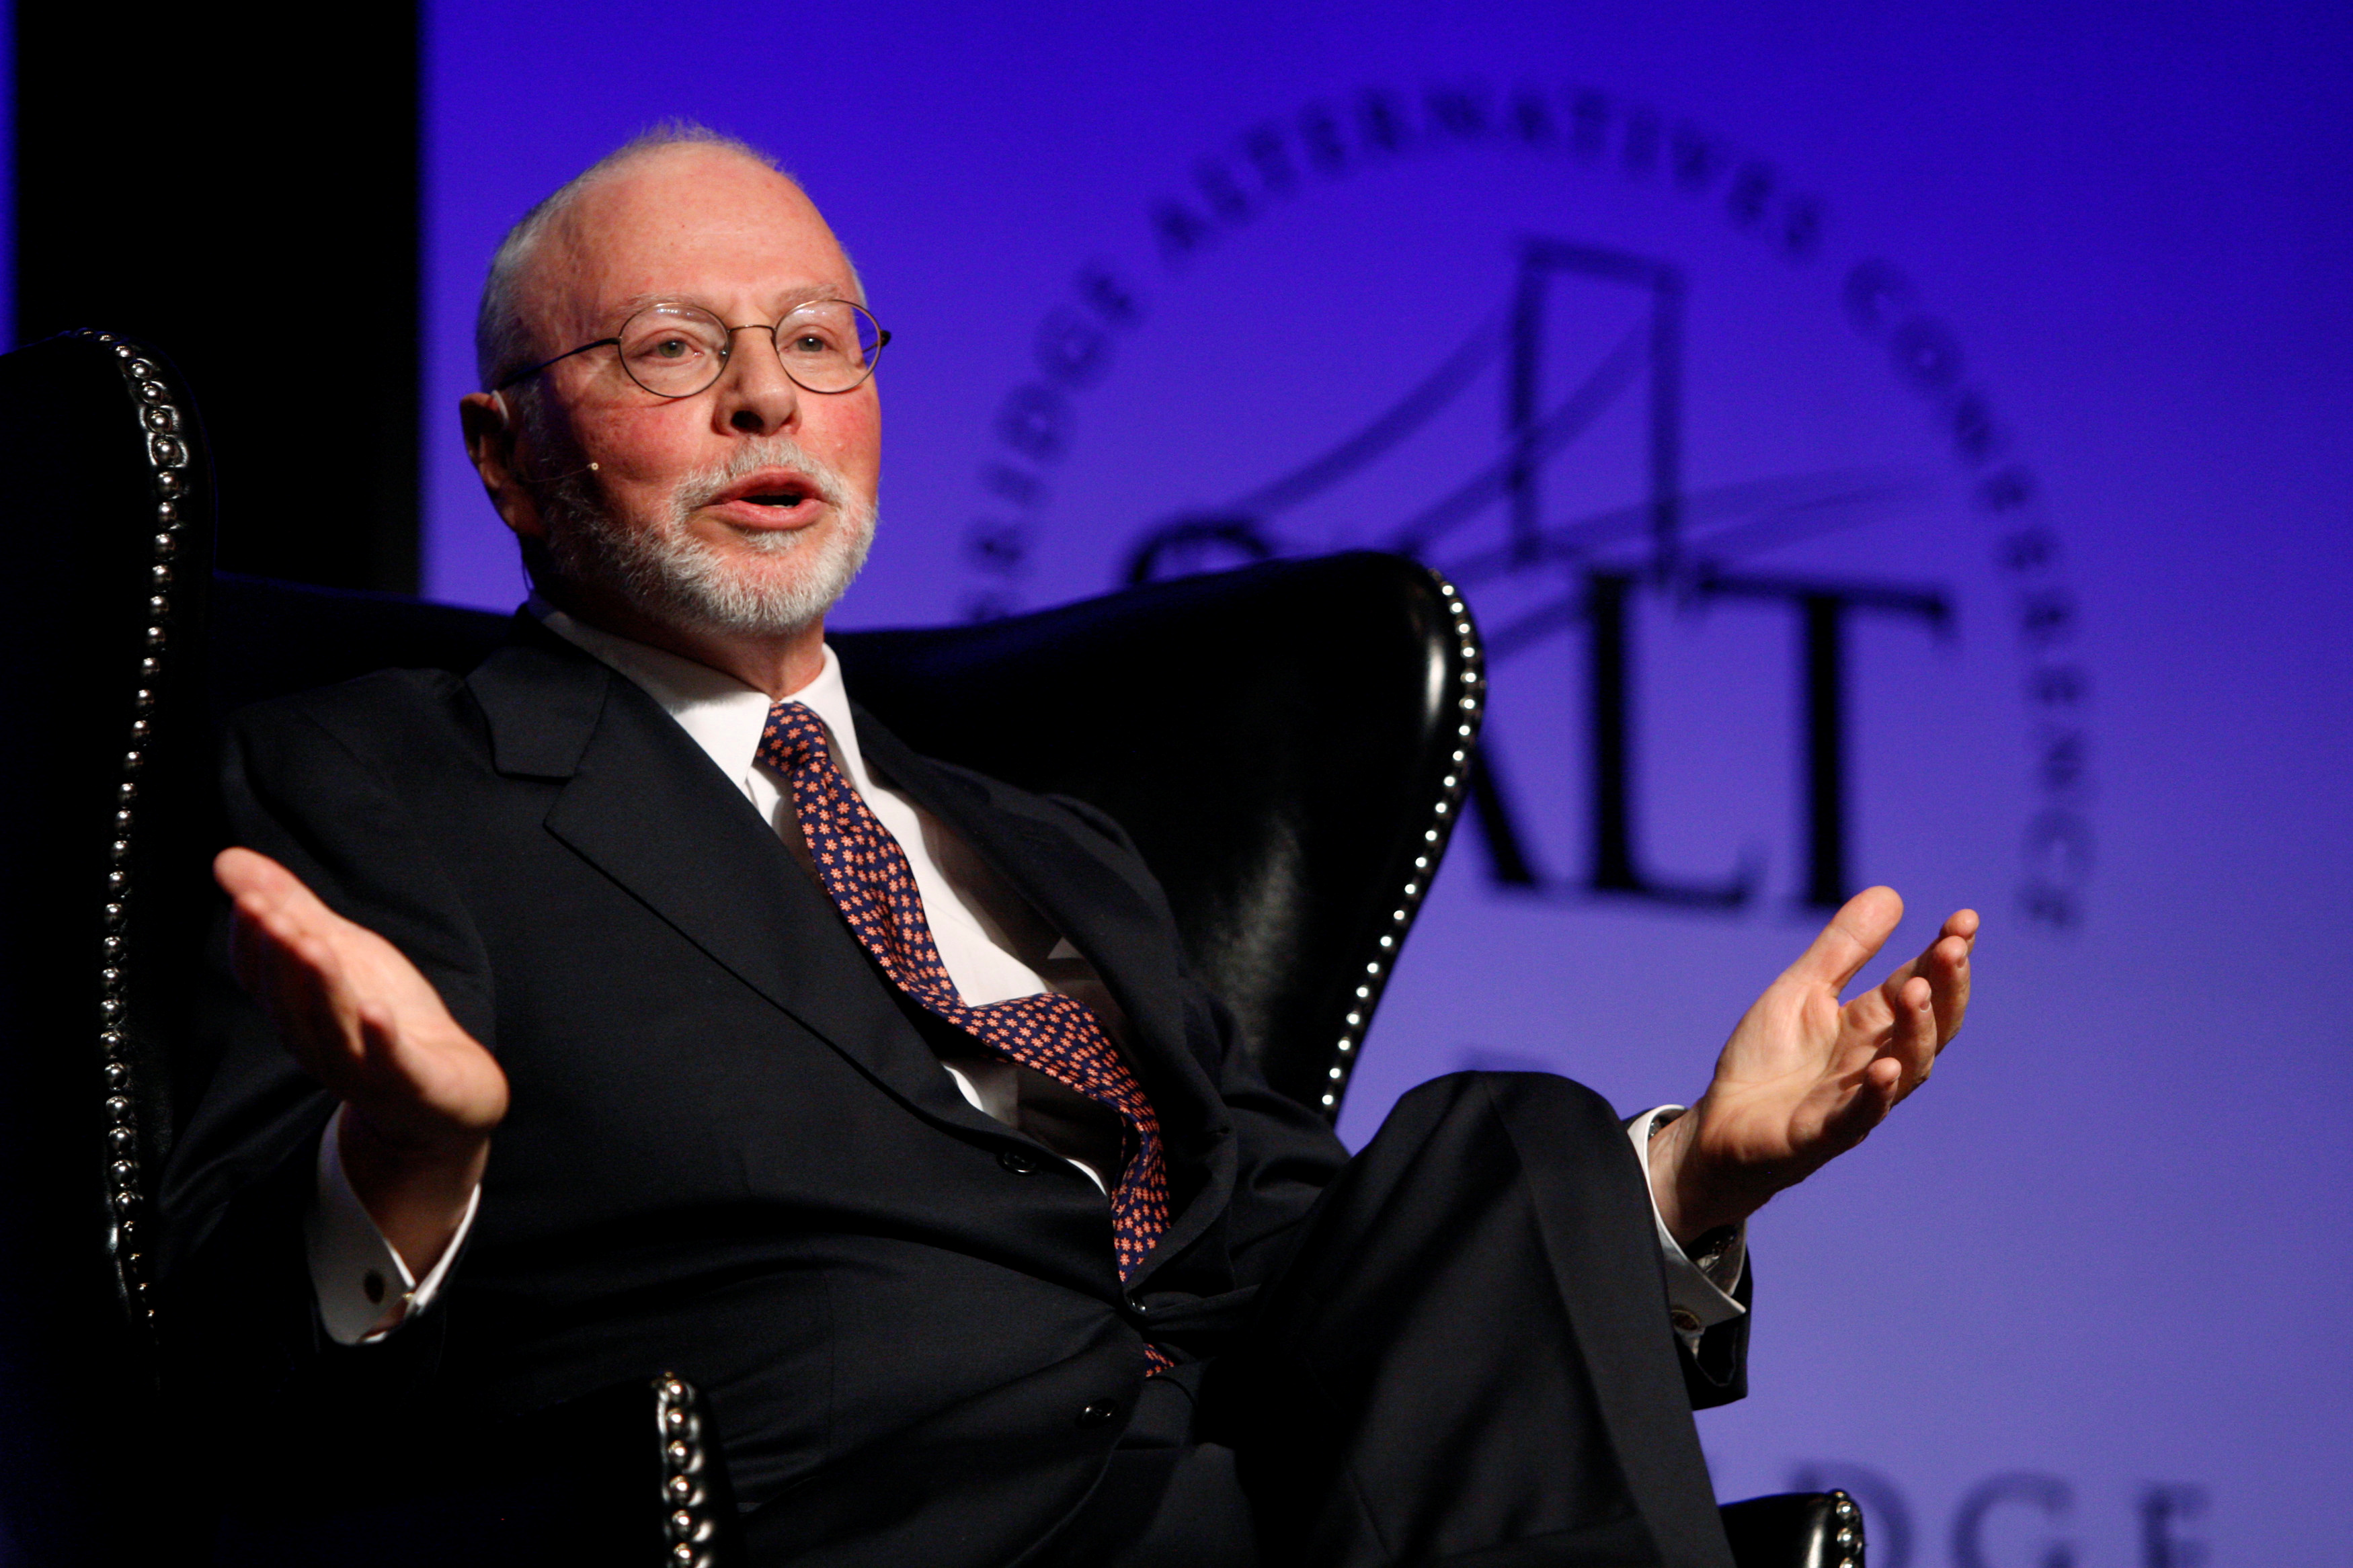 Paul Singer, founder, CEO, and co-chief investment officer for Elliott Management Corporation, speaks during the Skybridge Alternatives (SALT) Conference in Las Vegas, Nevada May, 9, 2012.  REUTERS/Steve Marcus